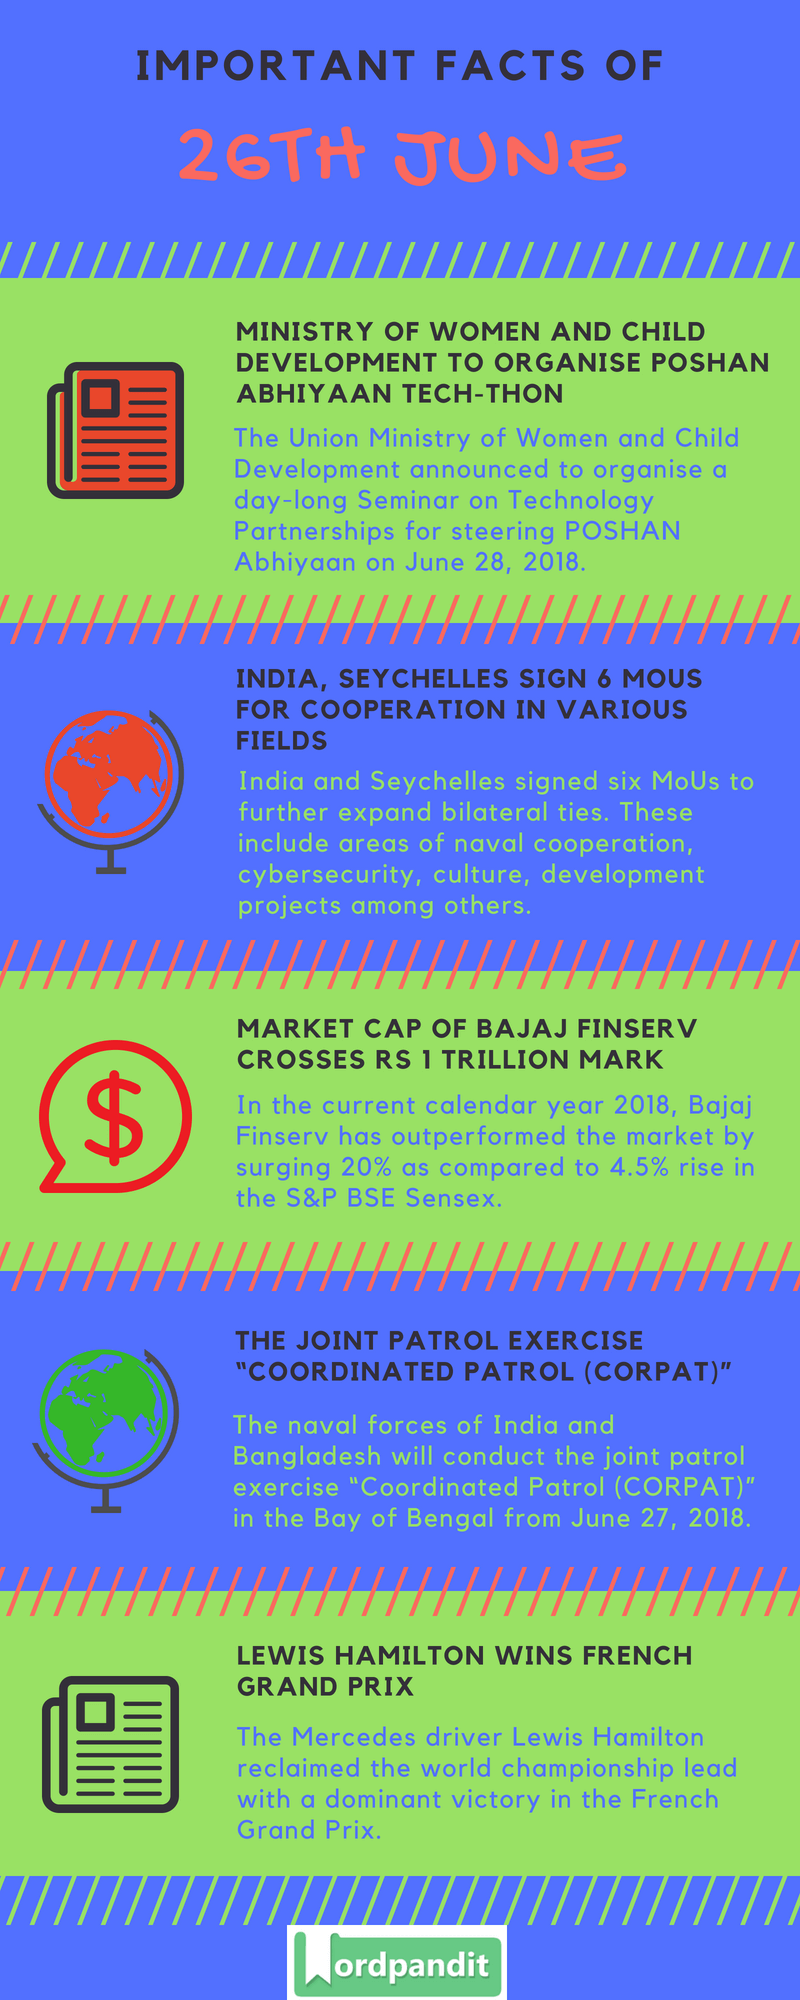 Daily Current Affairs 26 June 2018 Current Affairs Quiz June 26 2018 Current Affairs Infographic